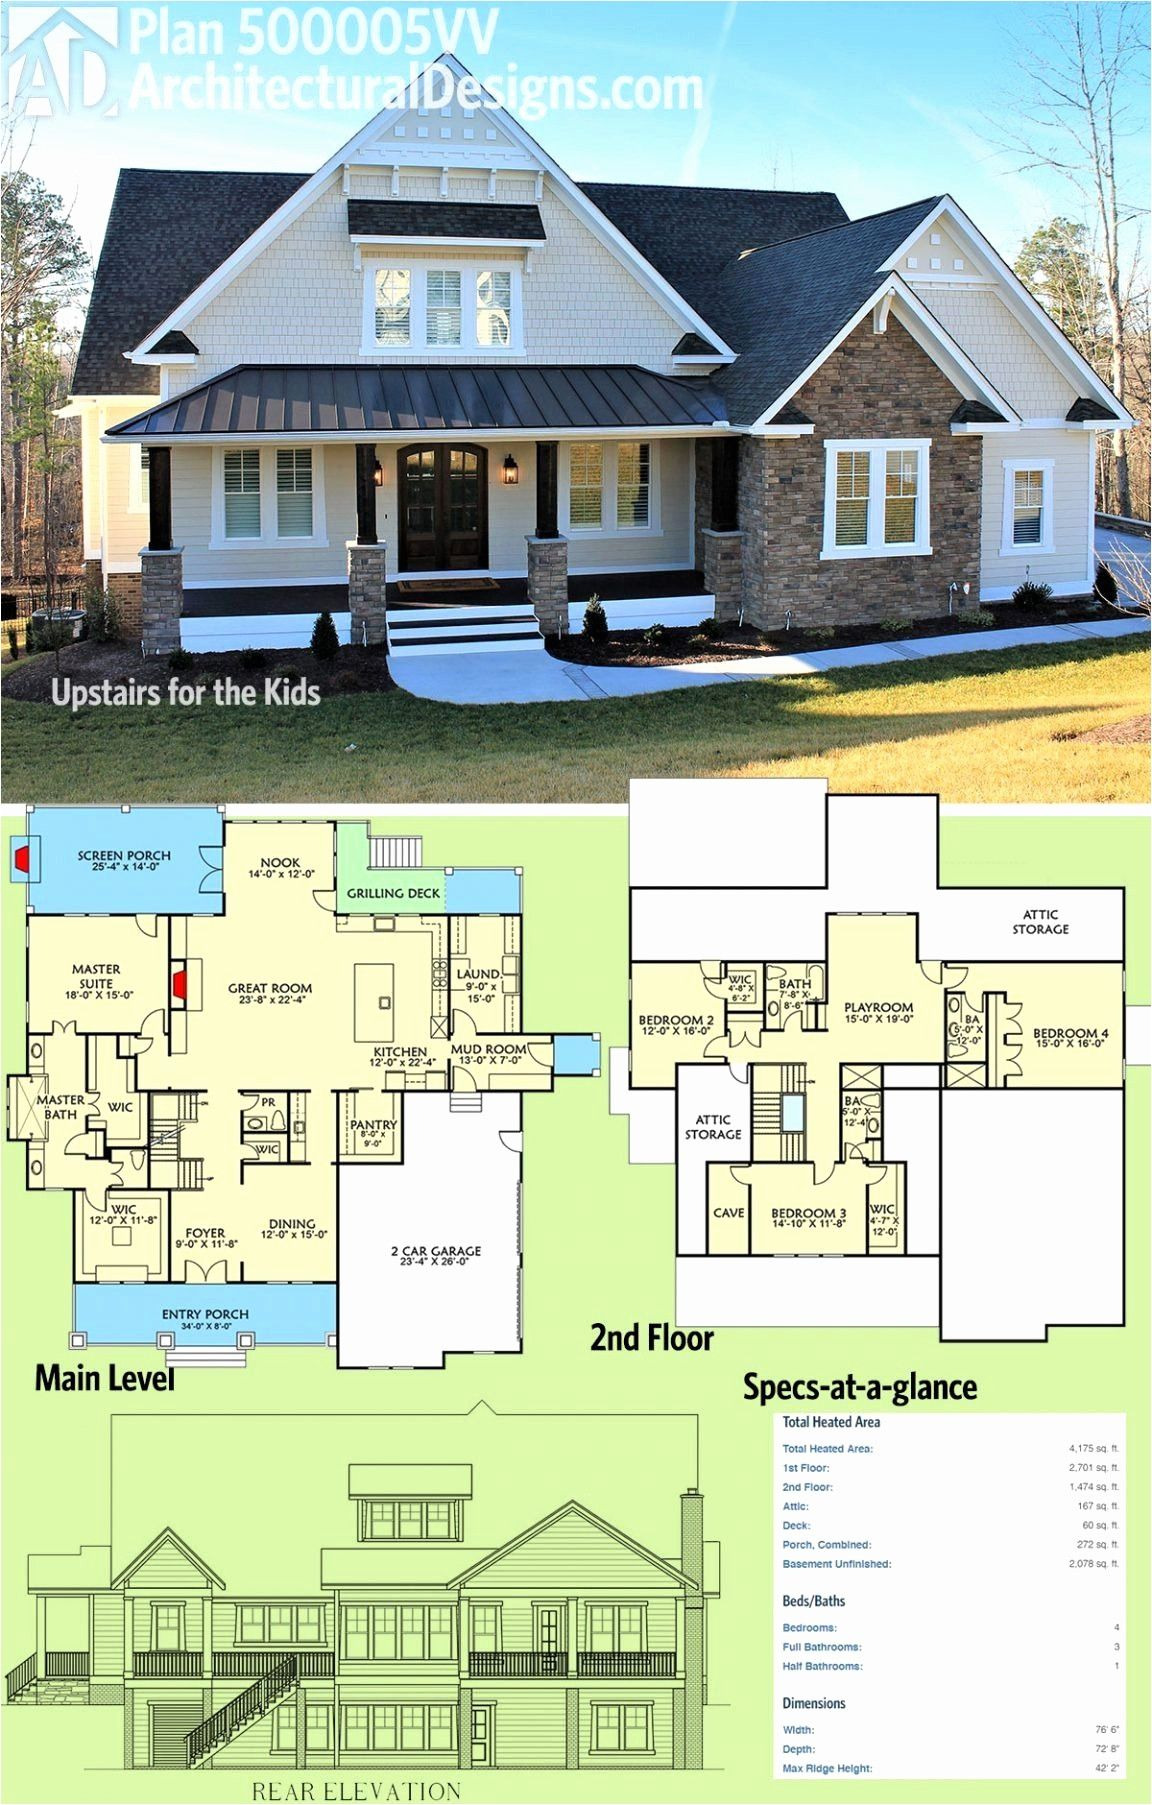 How Big Of A House Can I Build for 200k Beautiful House Plans Under 200k Pesos Check More at S